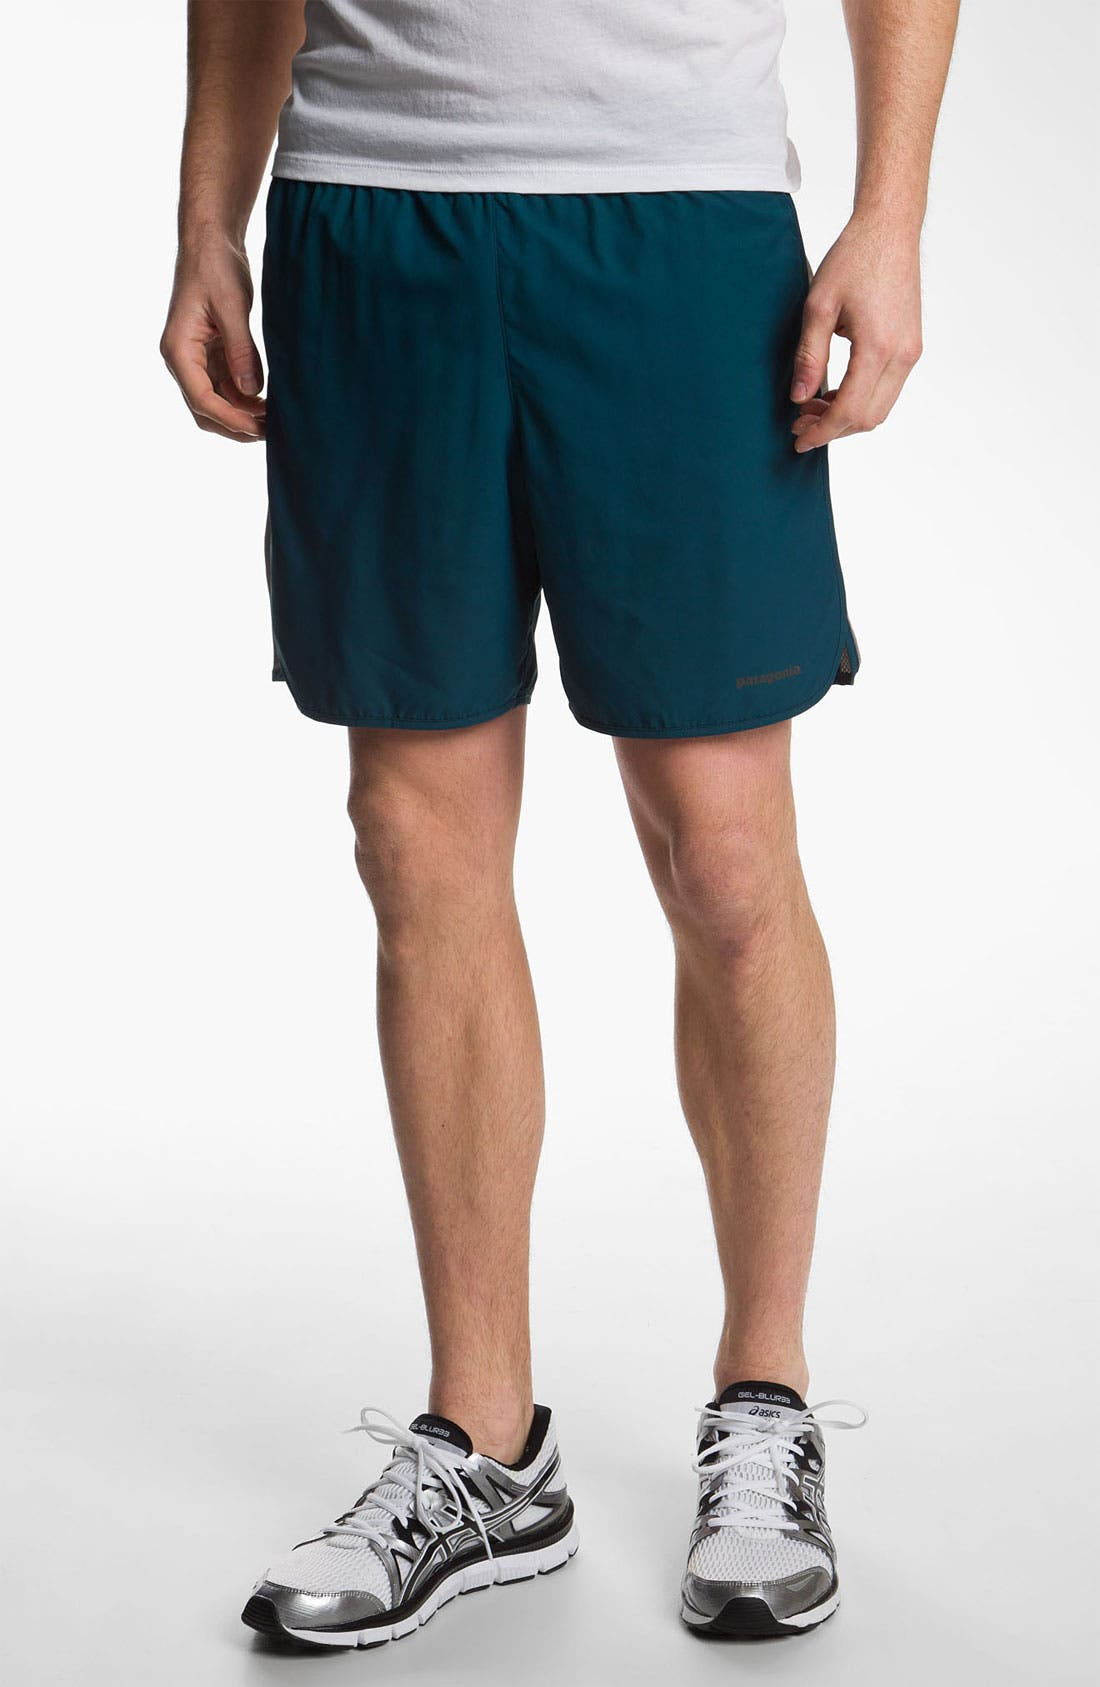 Alternate Image 1 Selected - Patagonia 'Strider' Shorts